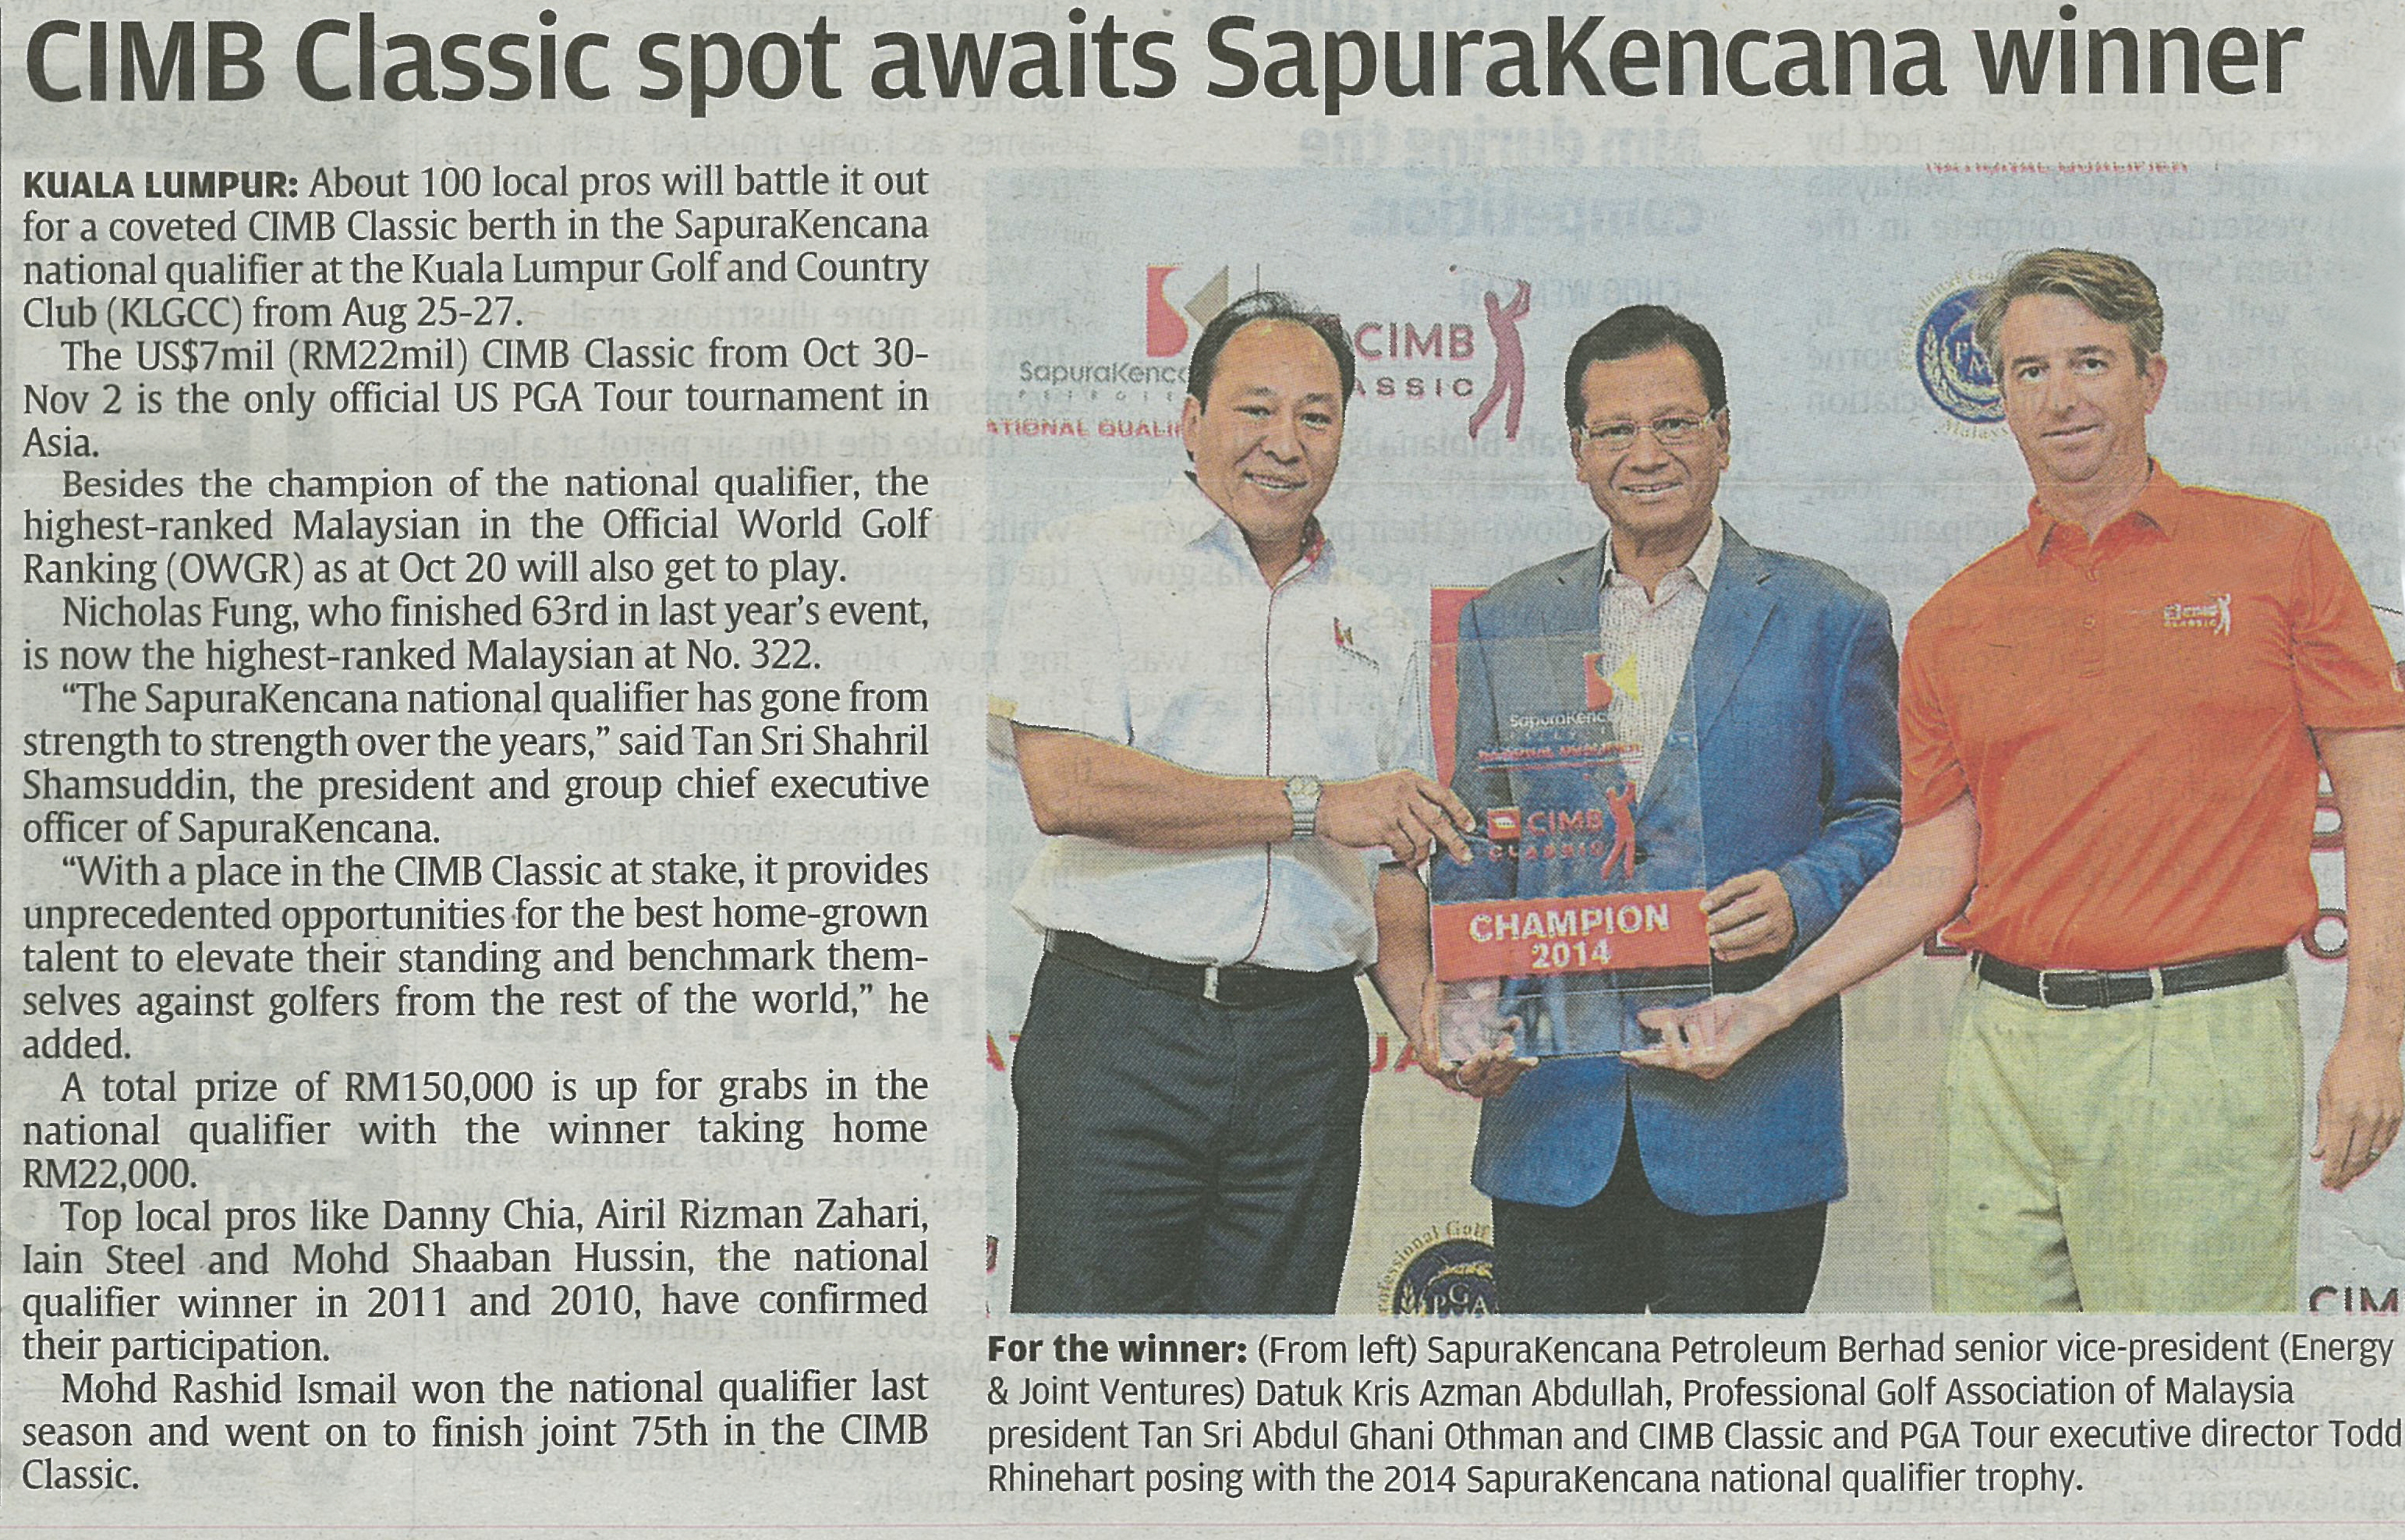 The Star - CIMB Classic spot awaits SapuraKencana winner (200814)